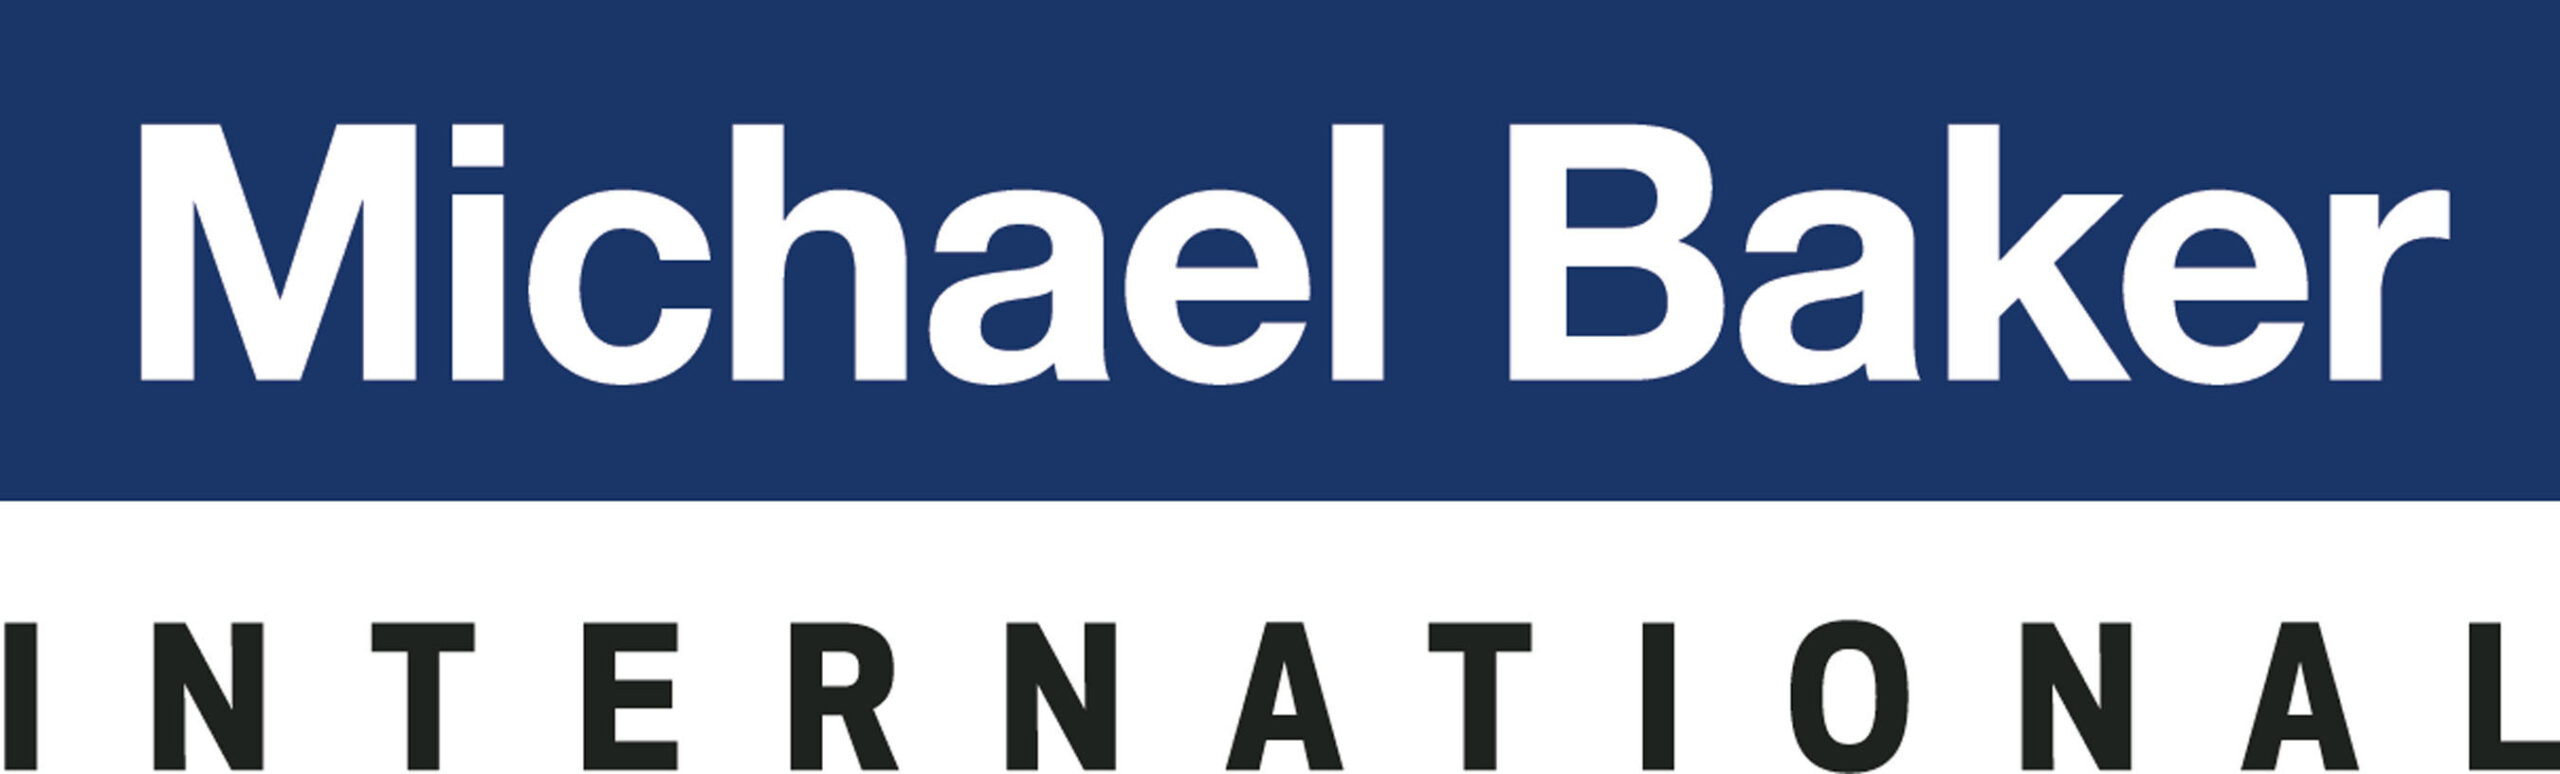 Michael Baker International (PRNewsFoto/Michael Baker International)